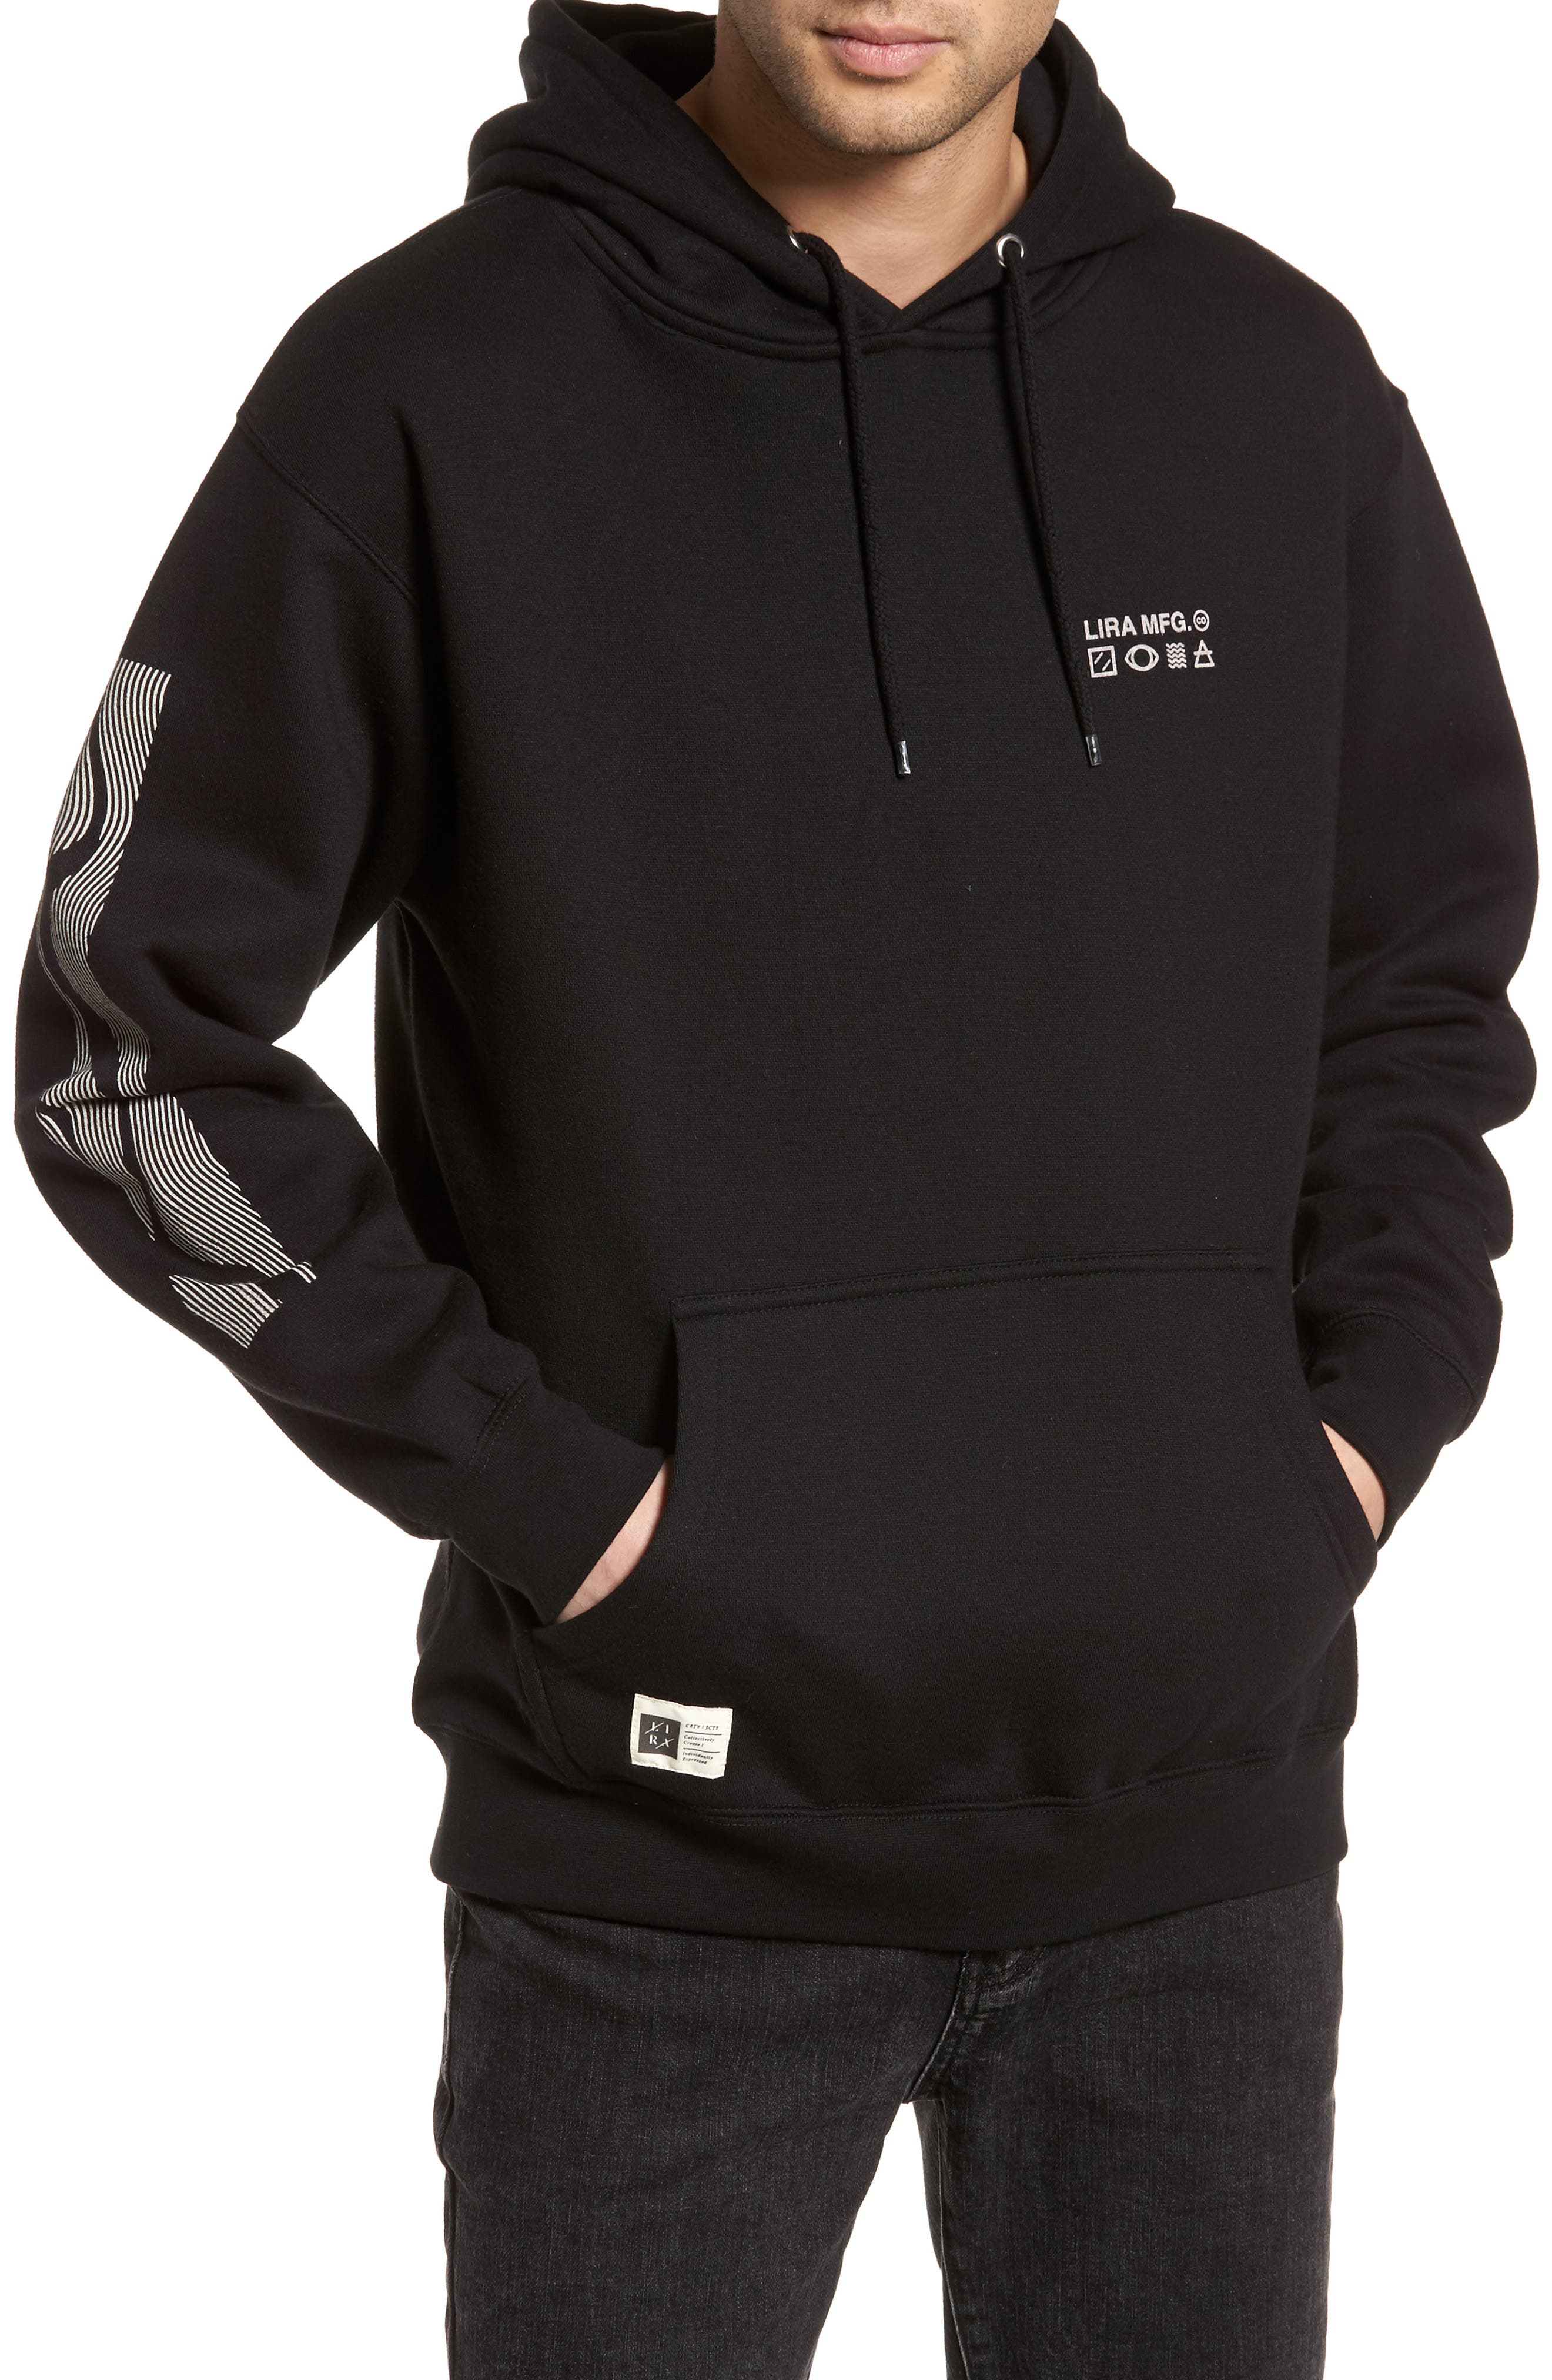 Main Image - Lira Clothing Coil Graphic Hoodie